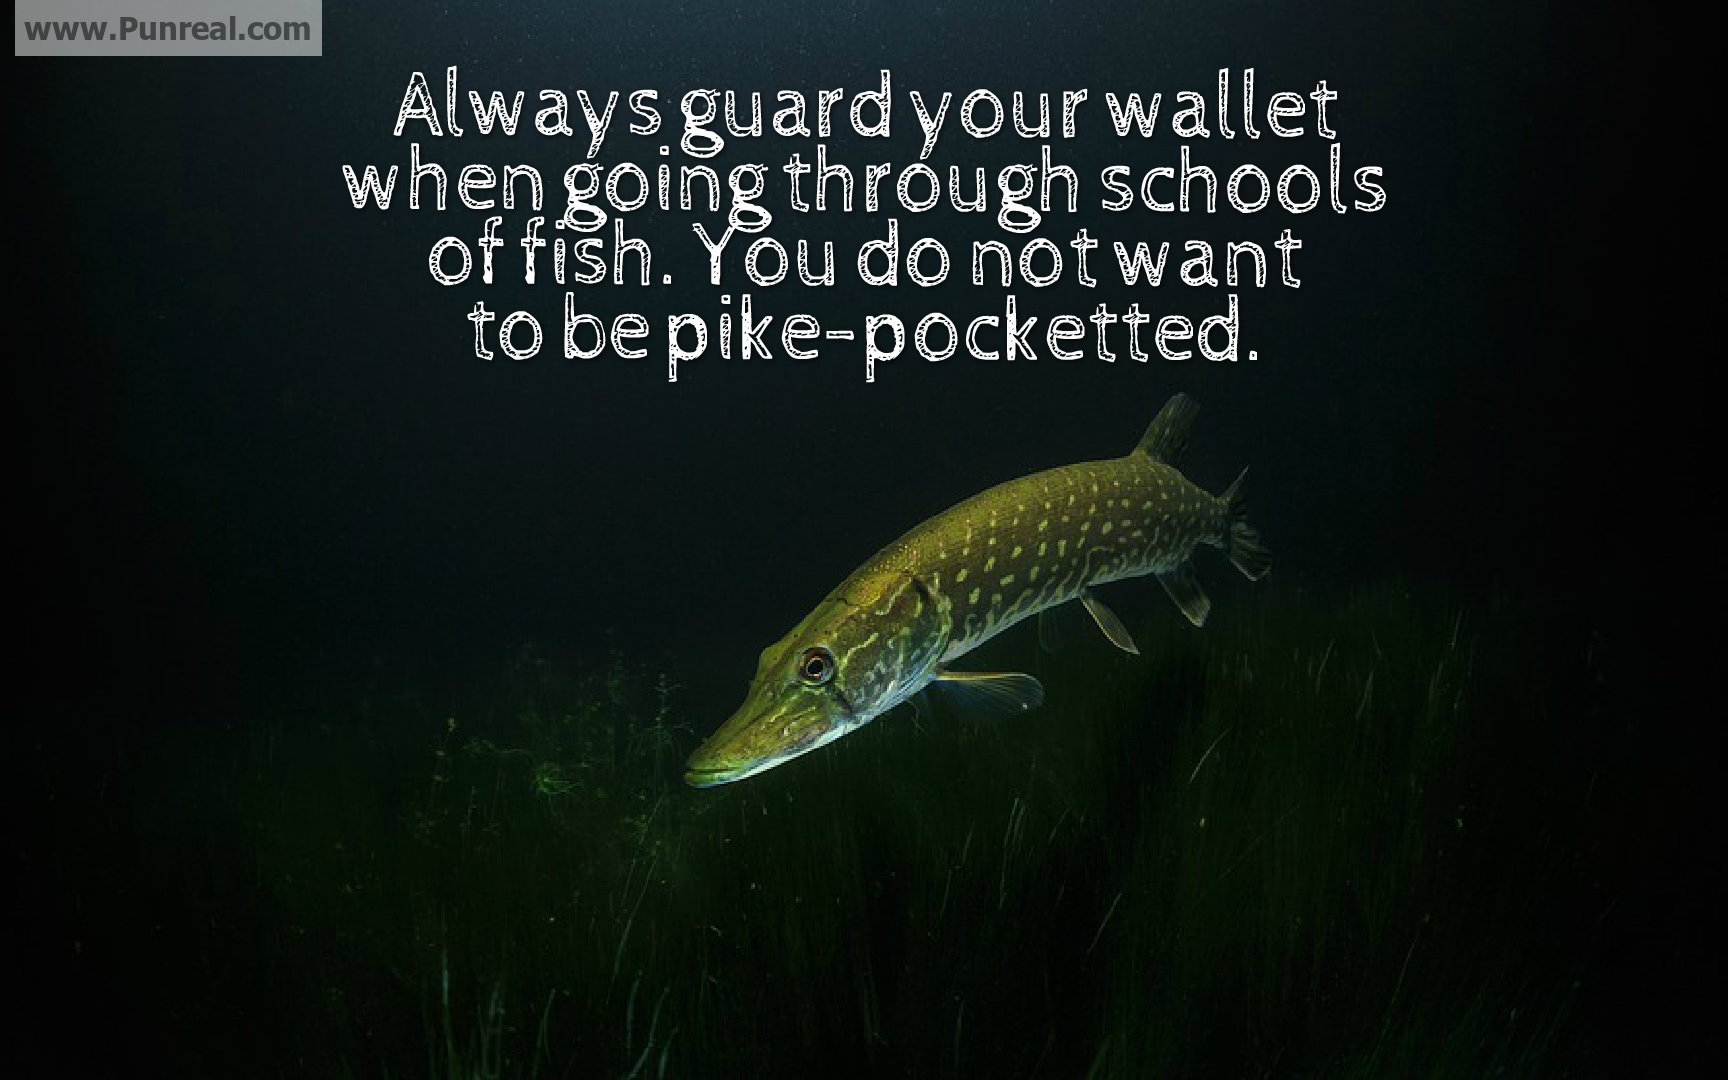 Always guard your wallet when going through schools of fish, you do not want to be pike-pocketed.